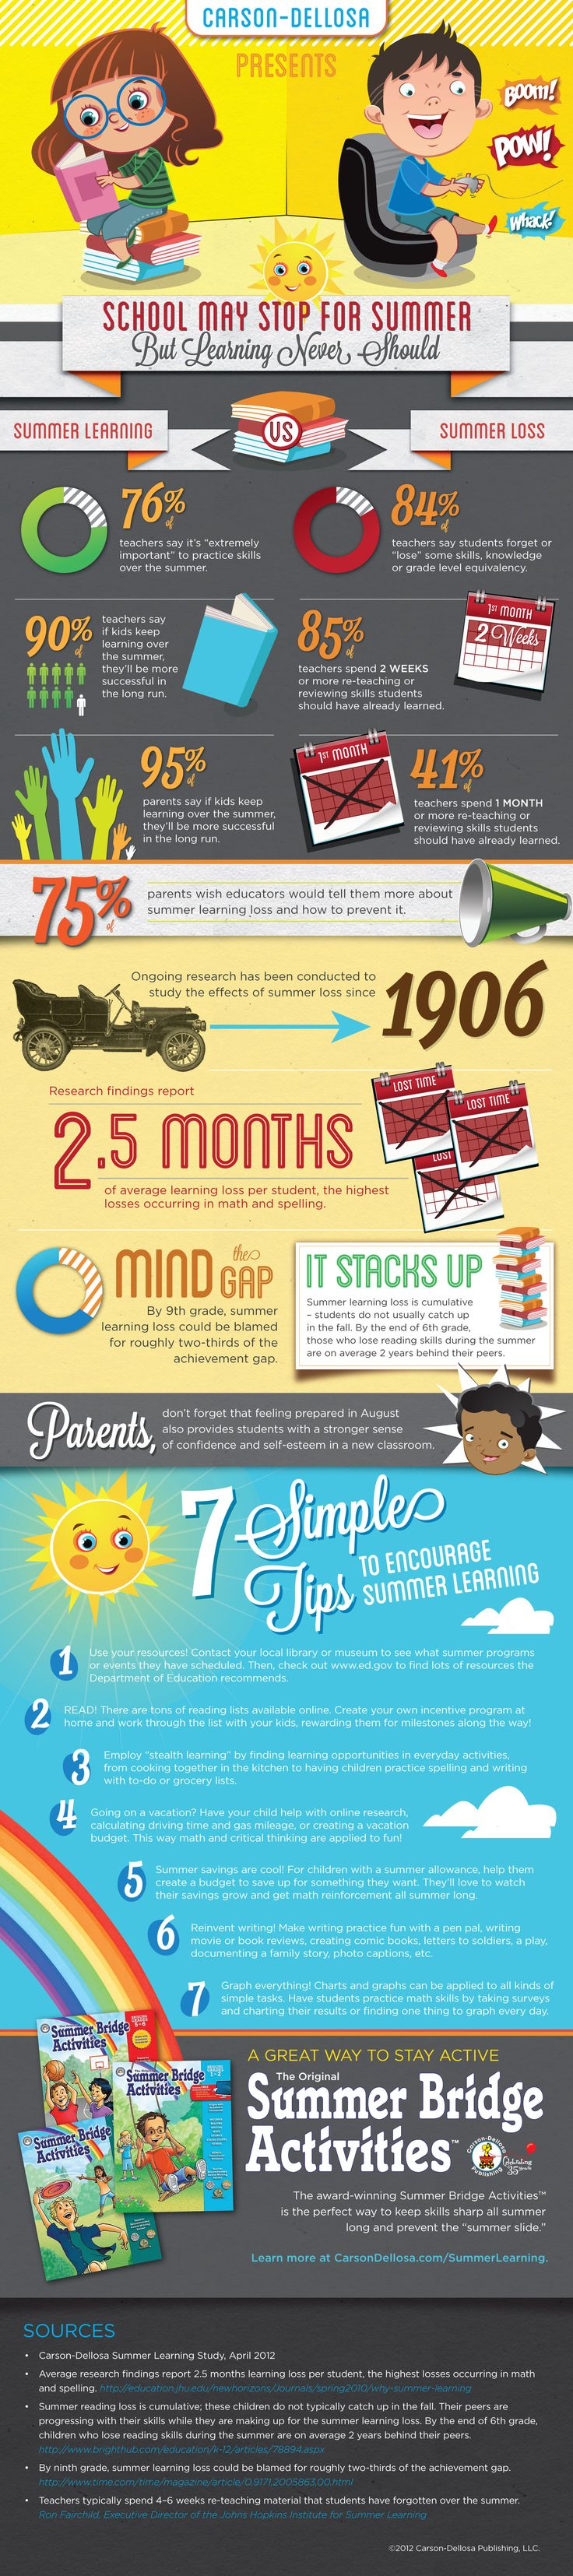 School may stop for summer but learning never should ... check out this fun, fact-filled infographic on Summer Learning with tips to keep kids sharp all summer.: Summerlearning, Learning Loss, Idea, School, Summer Slide, Kids, Summer Learning